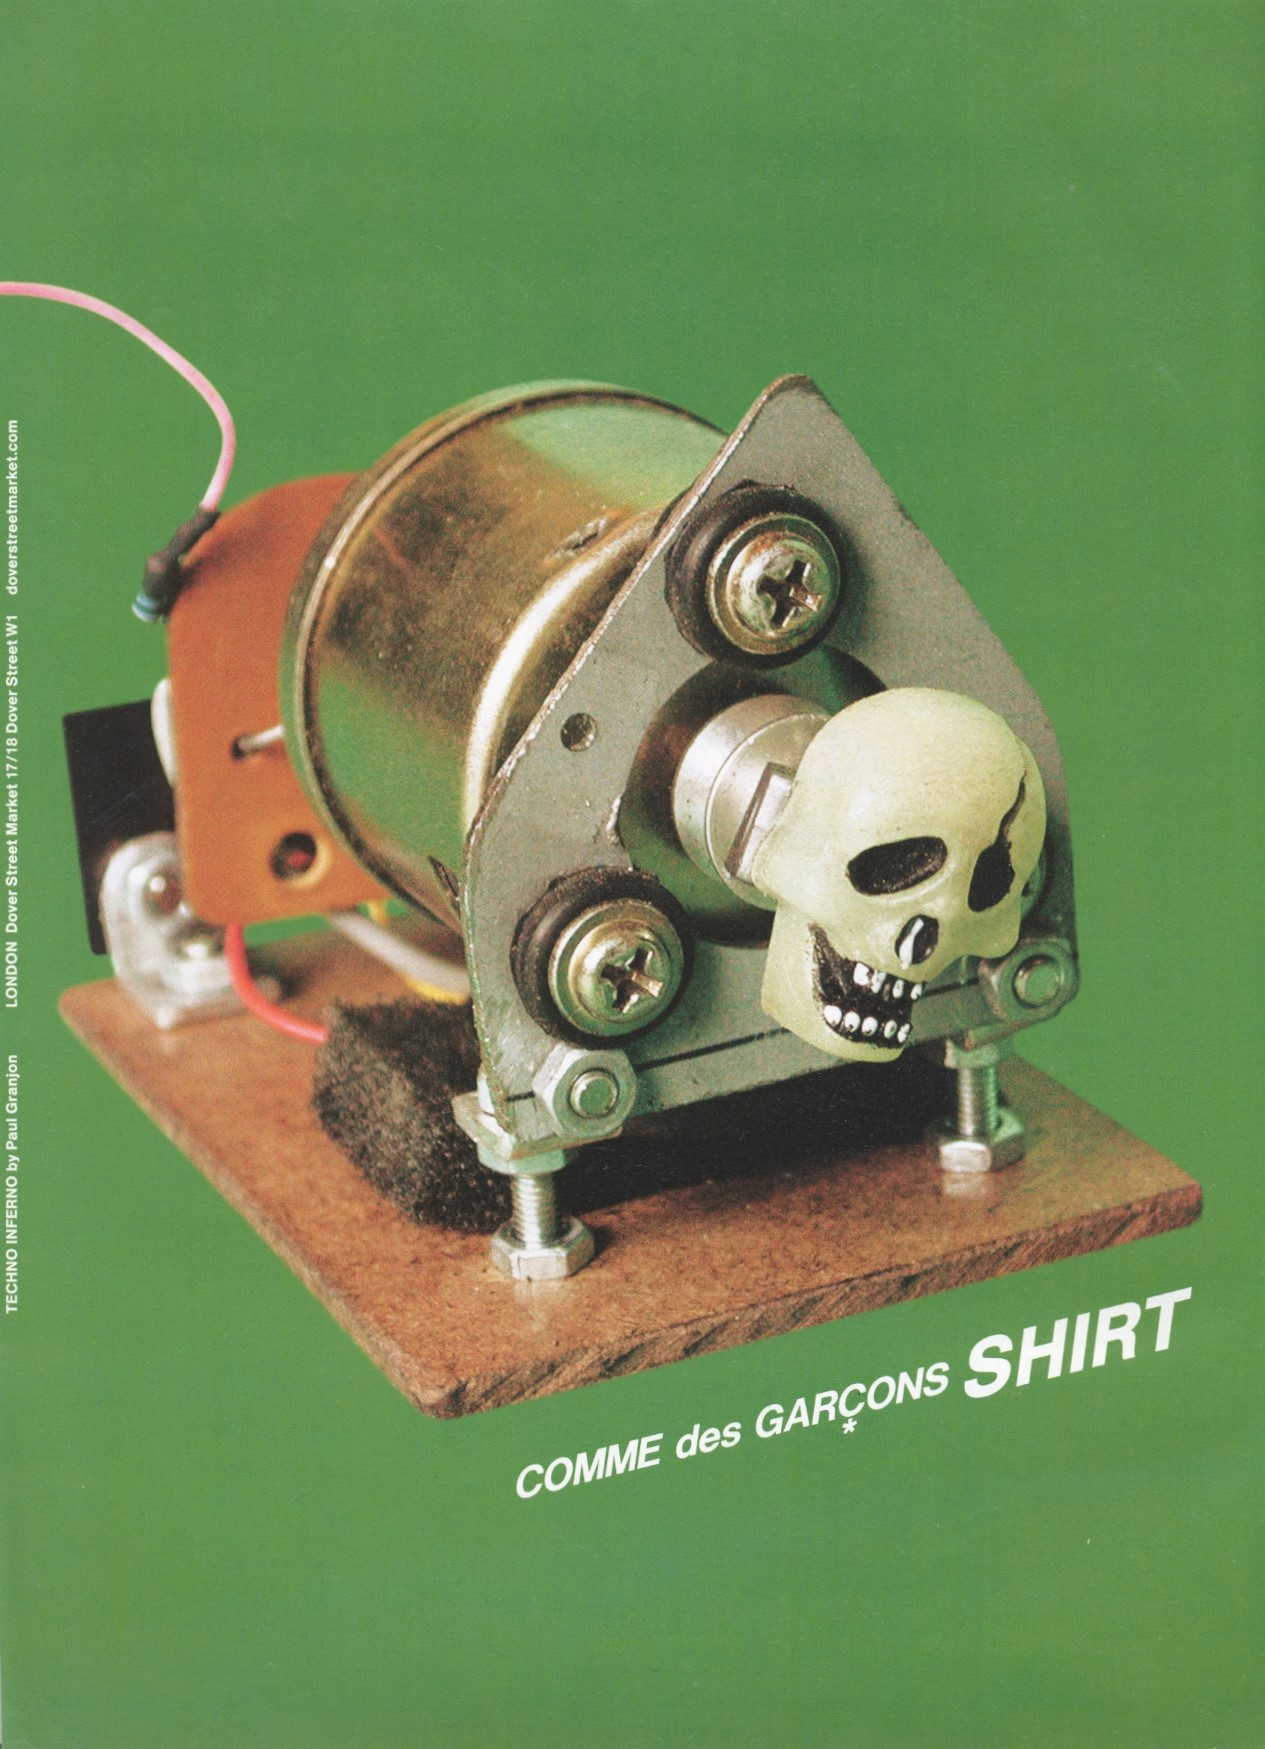 COMME DES GARCONS SHIRT | TECHNO INFERNO BY PAUL GRANJON